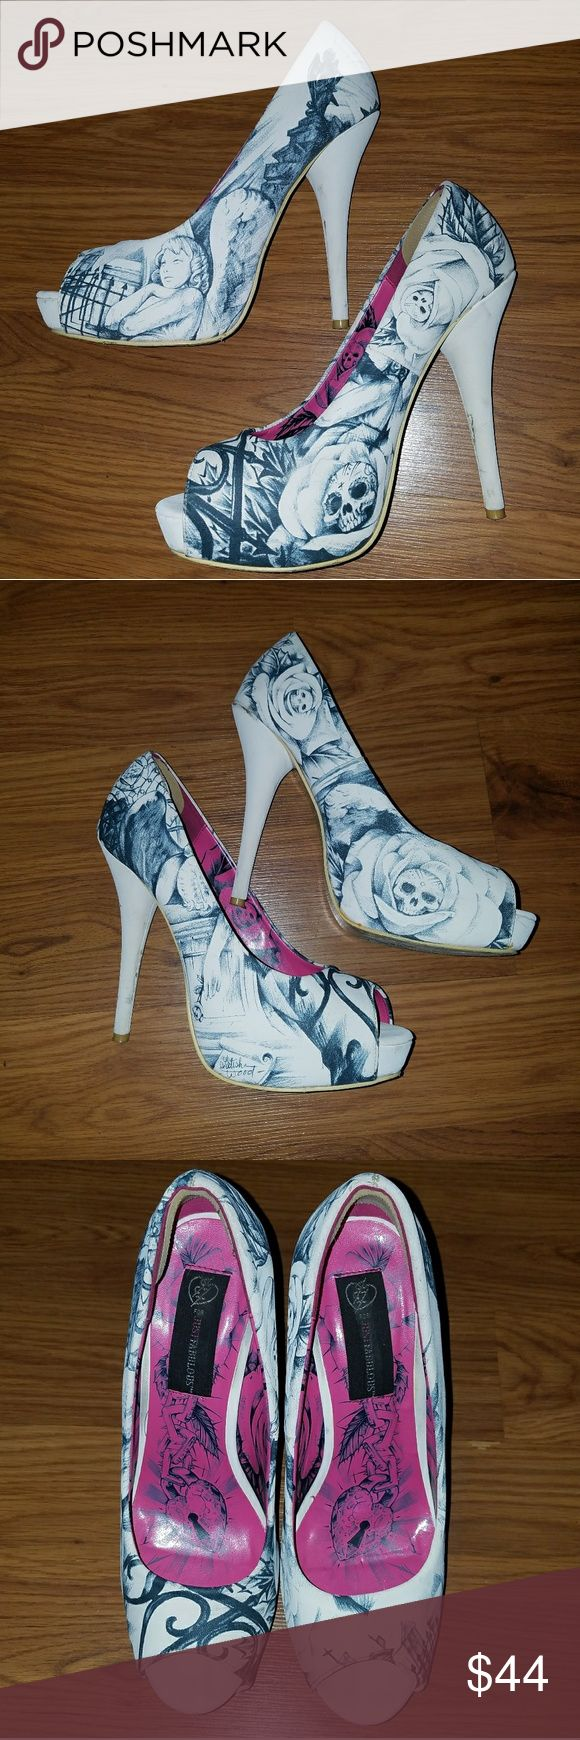 Iron Fist Heels Sold out limited edition Iron Fist Heels some wear great heels very unique. Iron Fist Shoes Heels